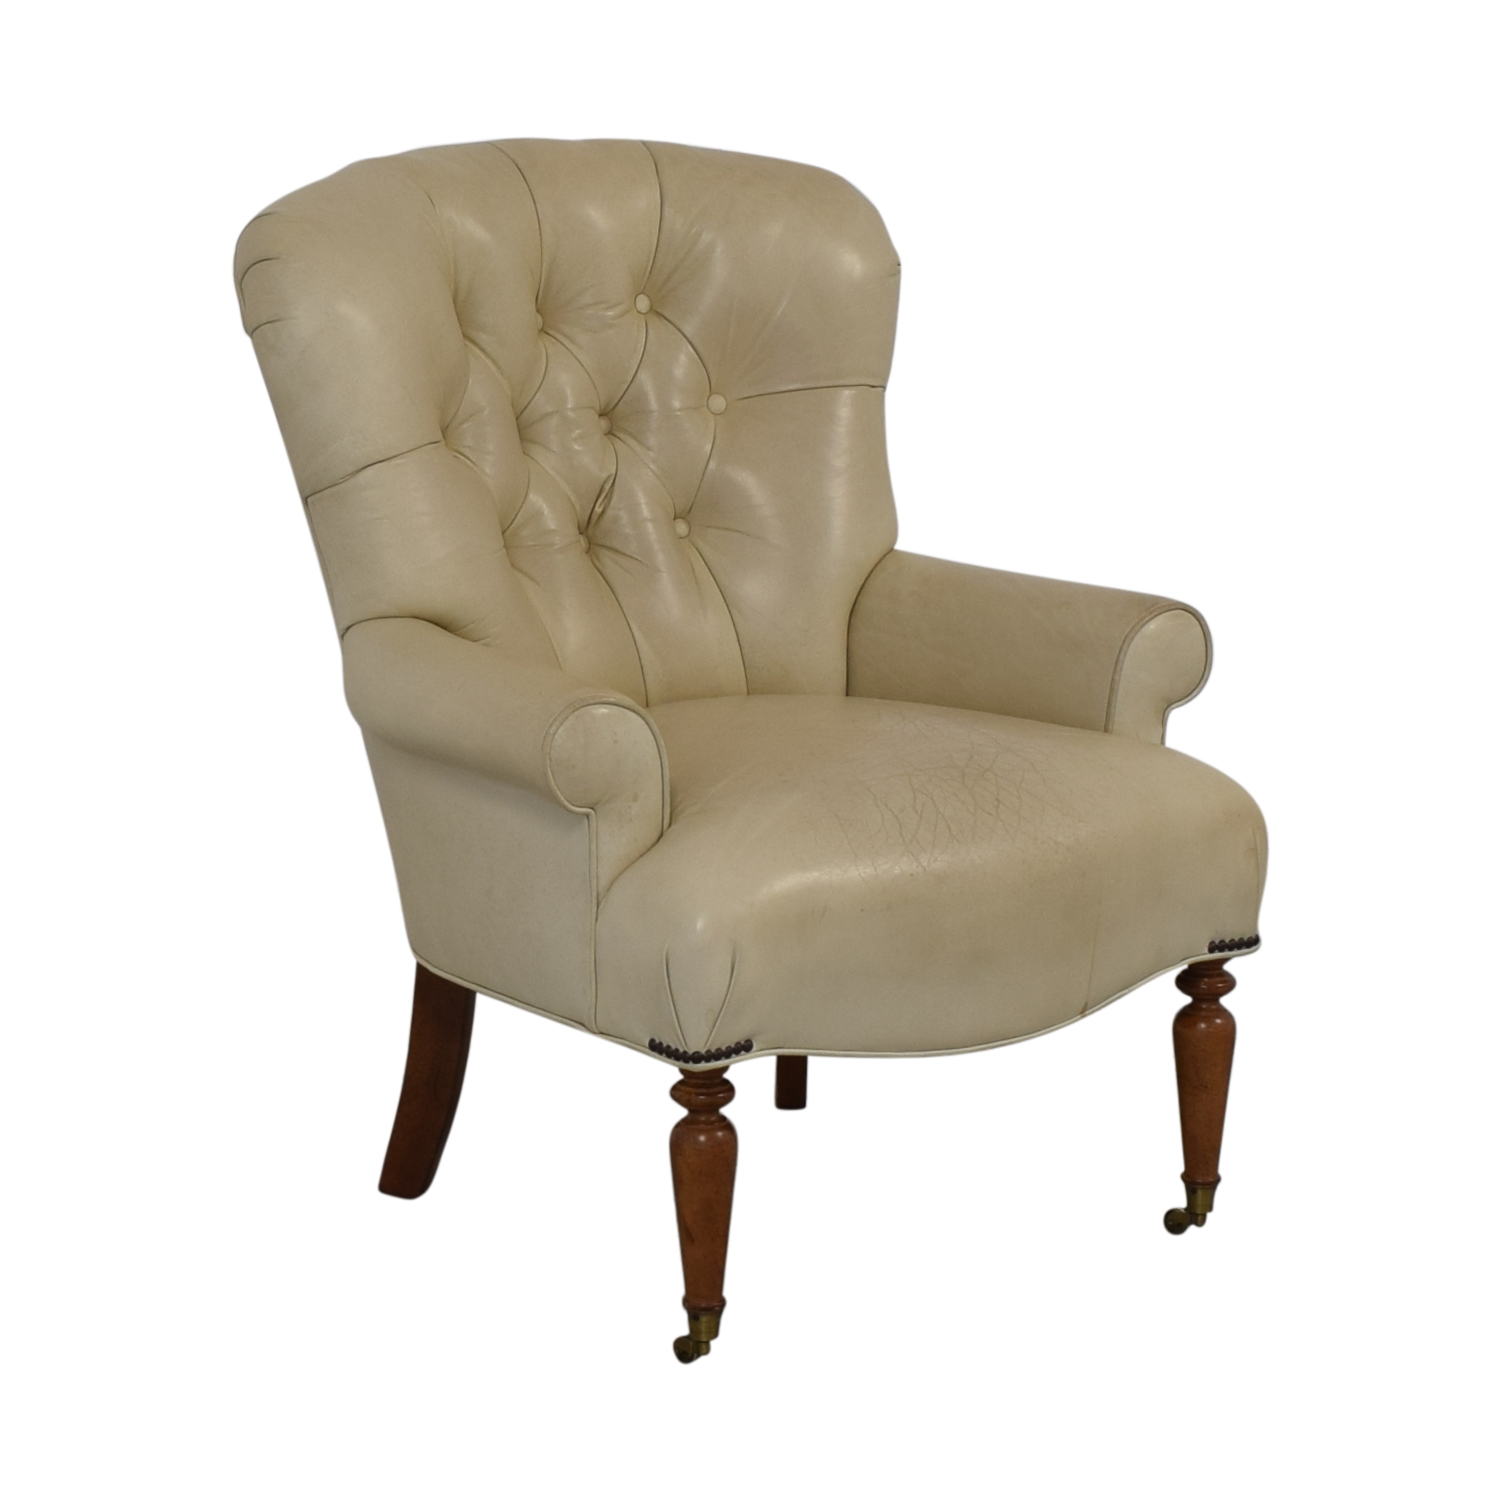 Tufted Accent Chair beige